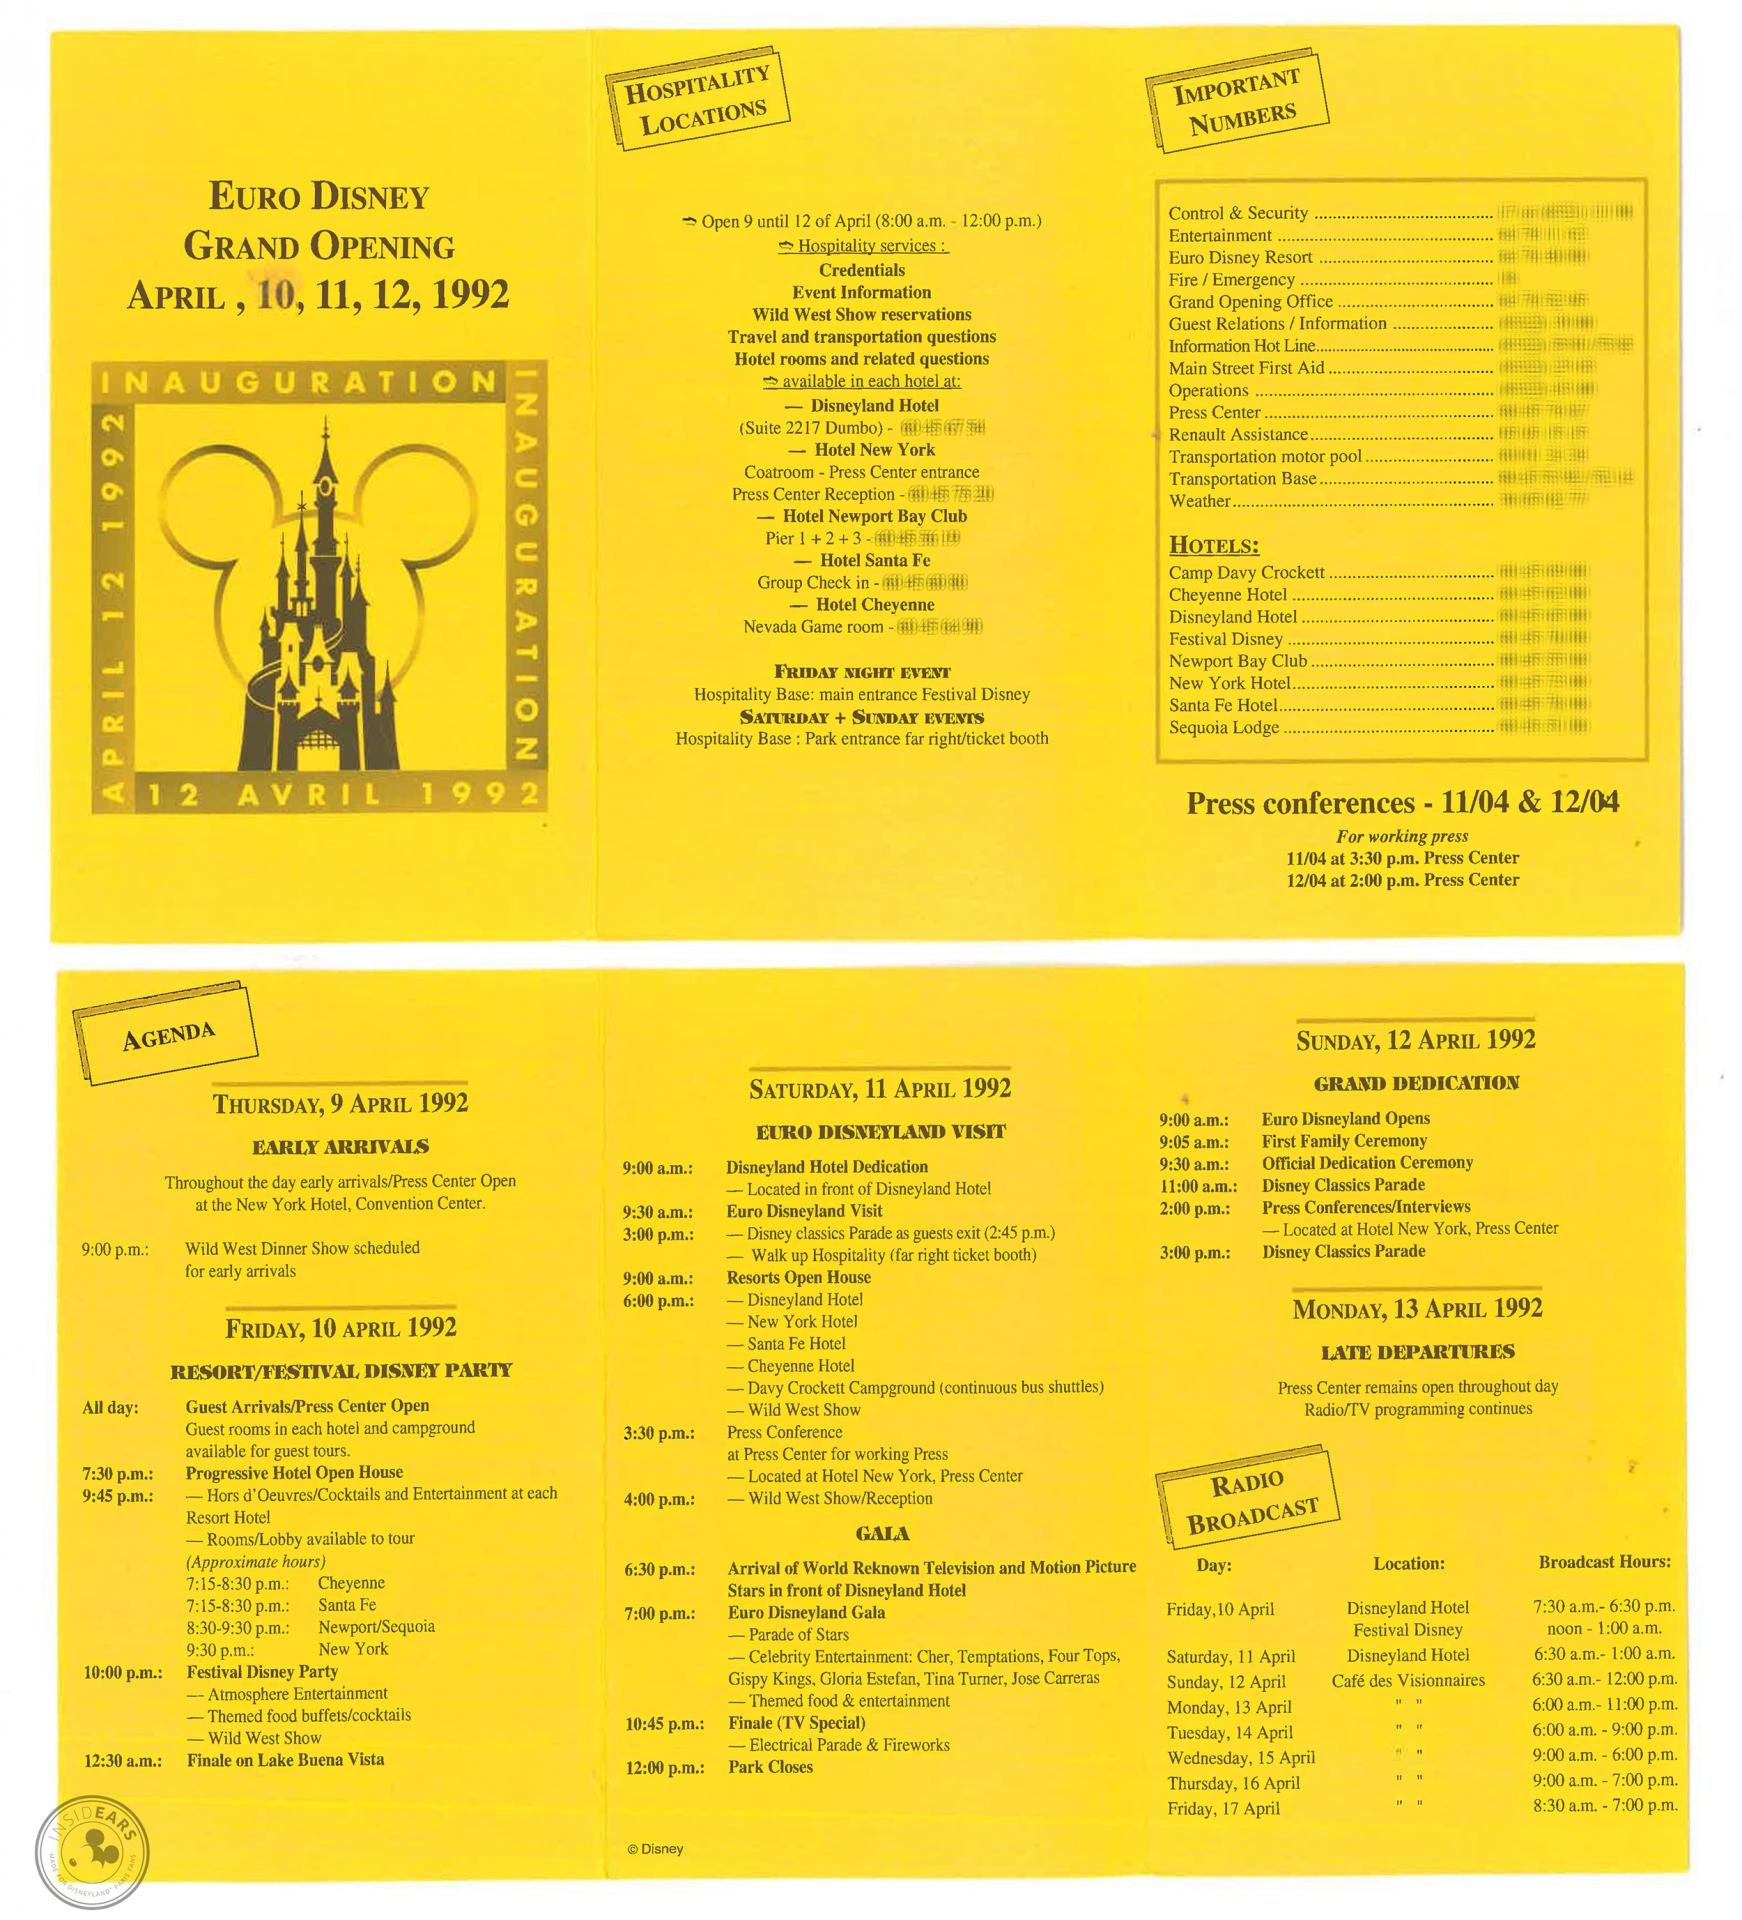 Grand Opening du 12 avril 1992 Disneyland ParisImg ashx 119